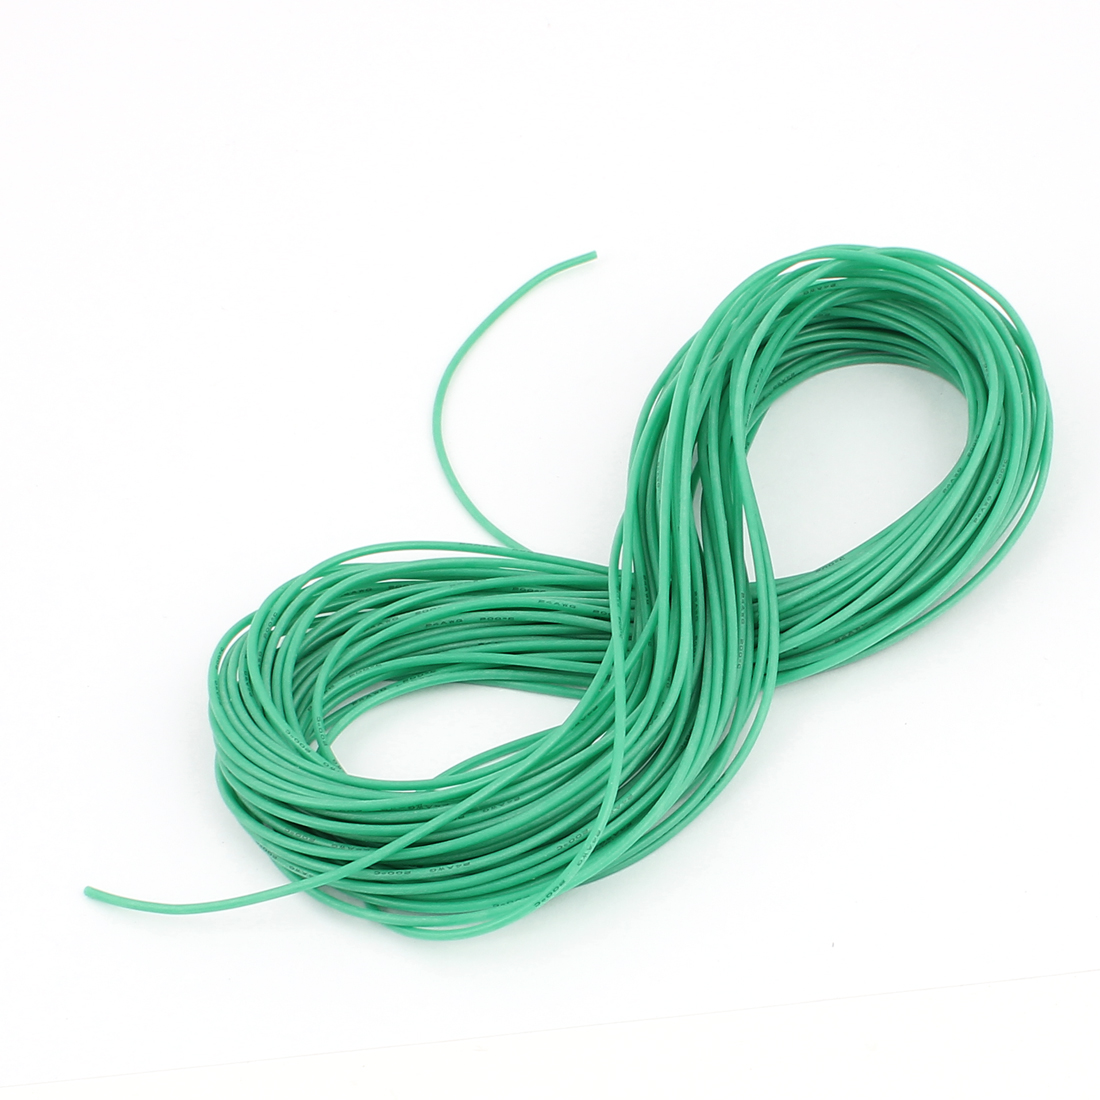 15M 24AWG Electric Copper Core Flexible Silicone Wire Cable Green